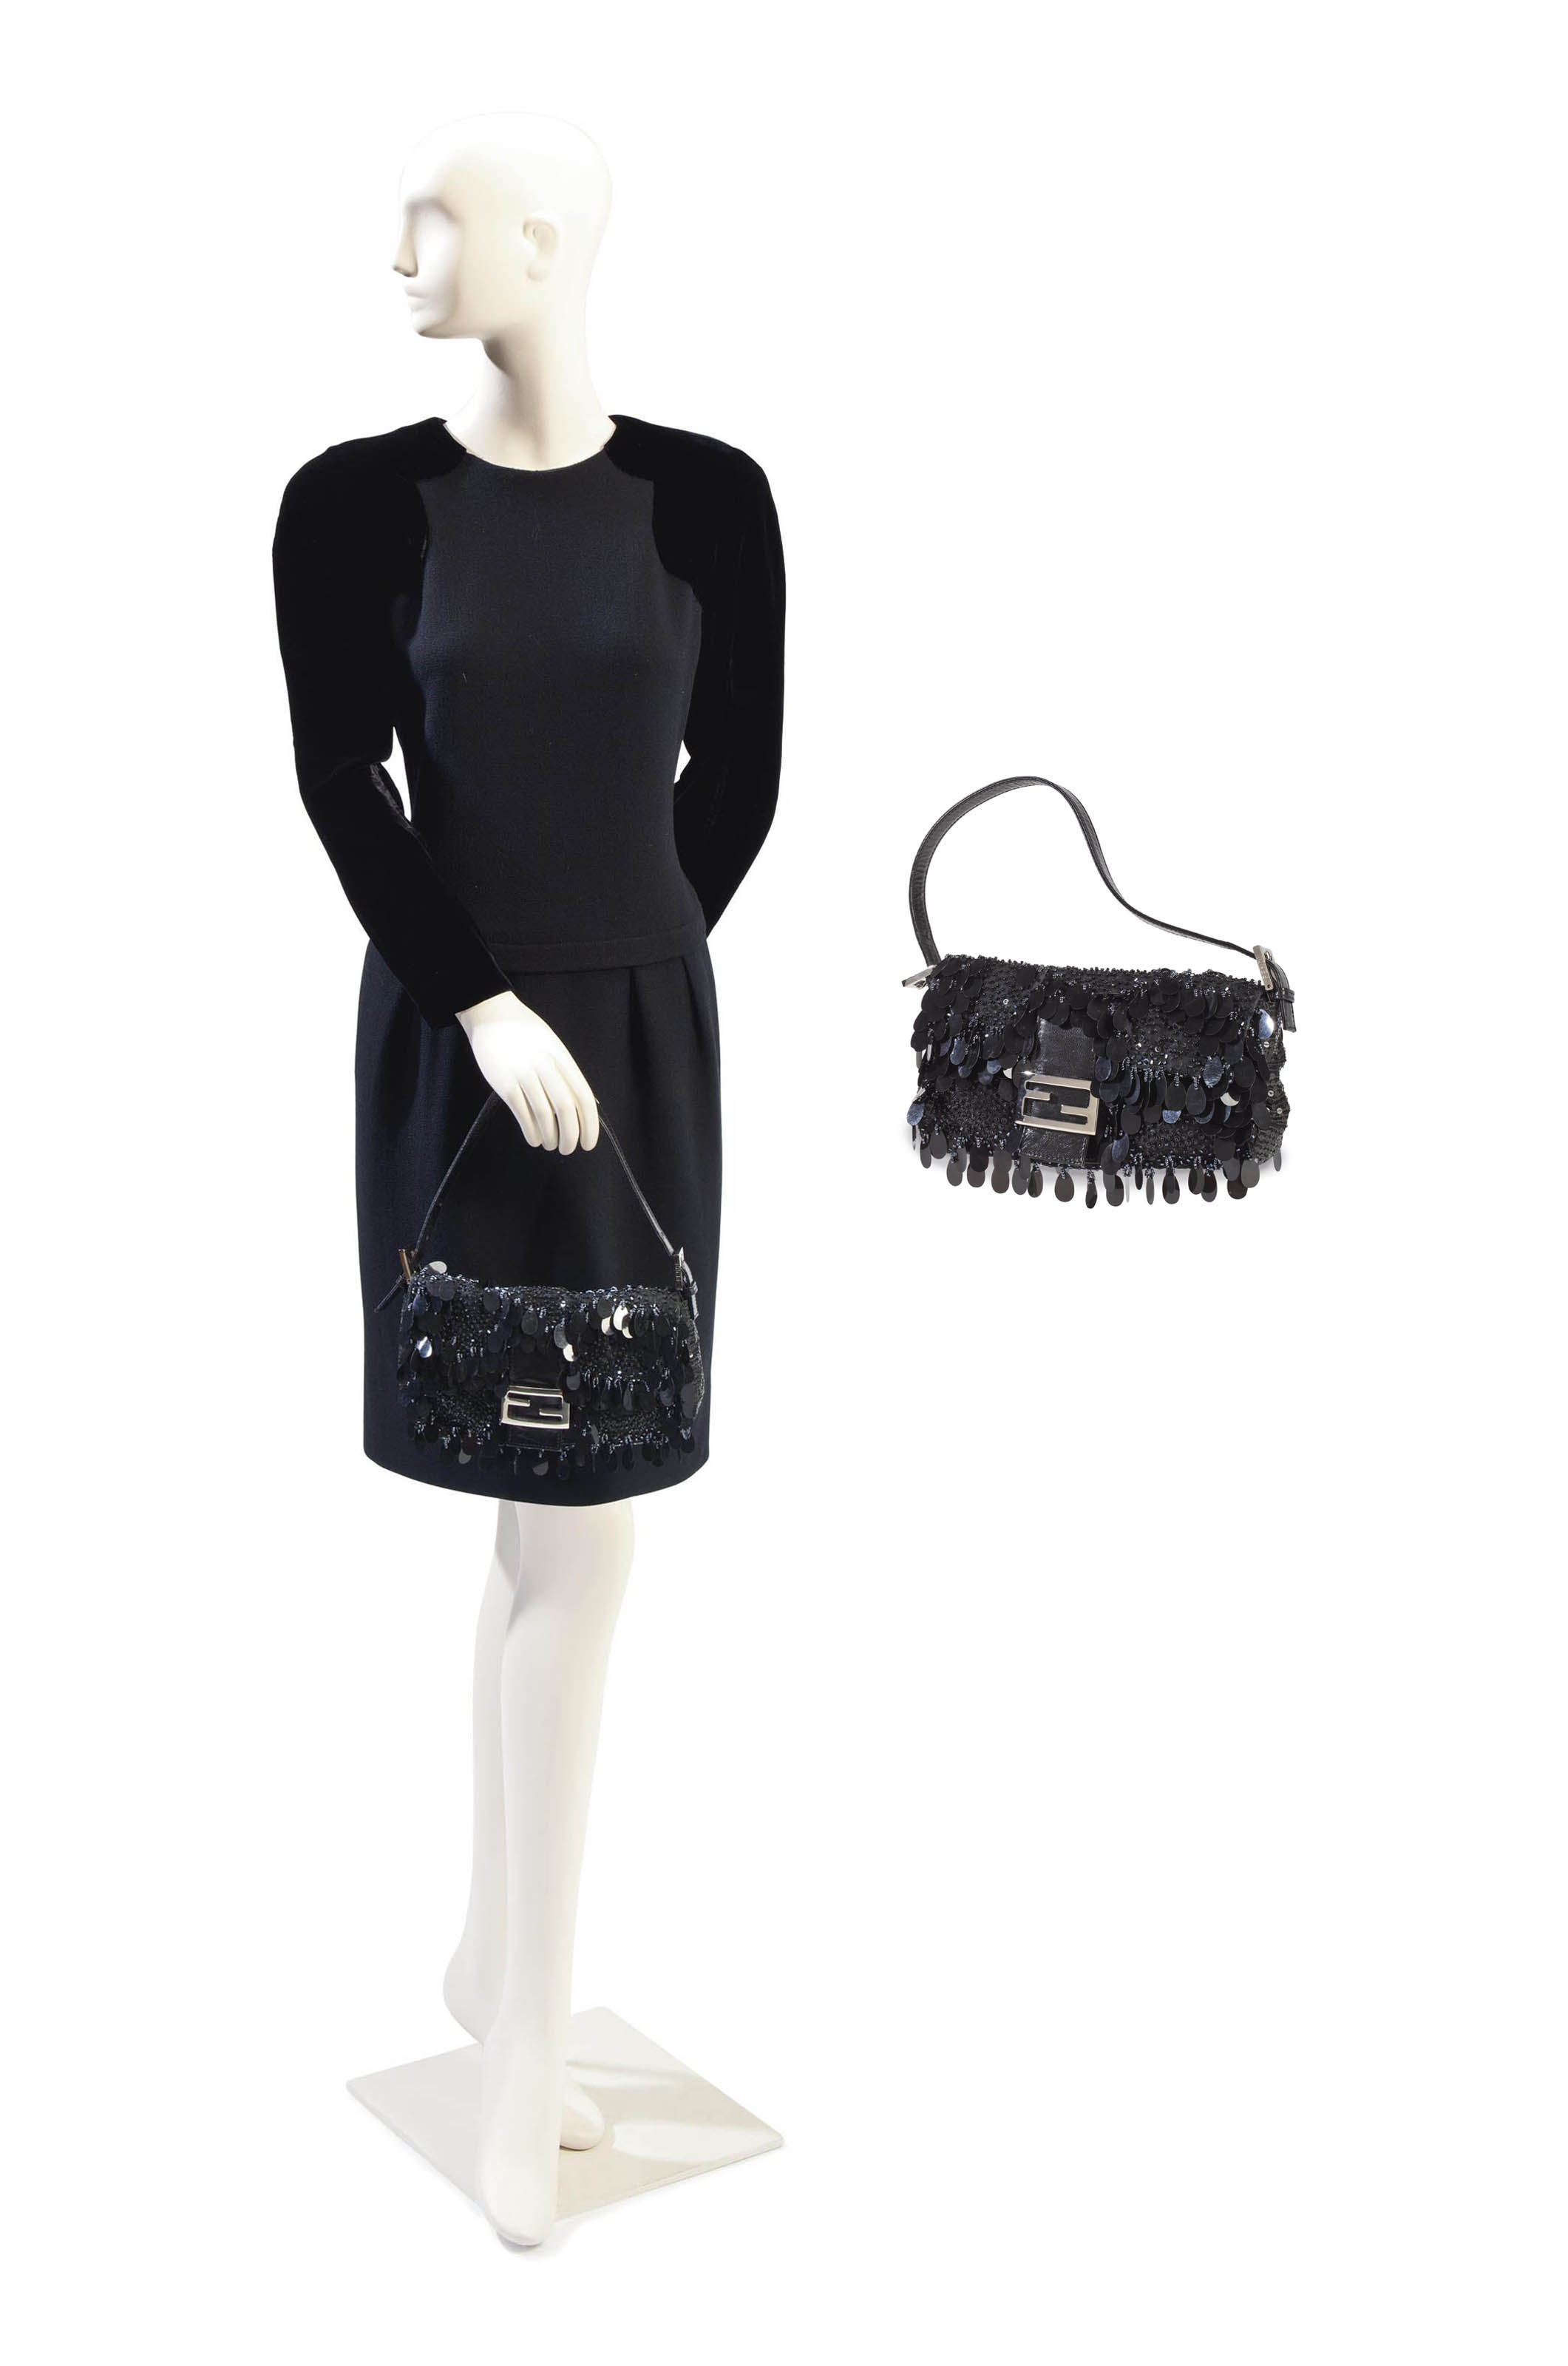 AN OSCAR DE LA RENTA BLACK VELVET AND CREPE EVENING DRESS WITH A FENDI BAGUETTE BAG